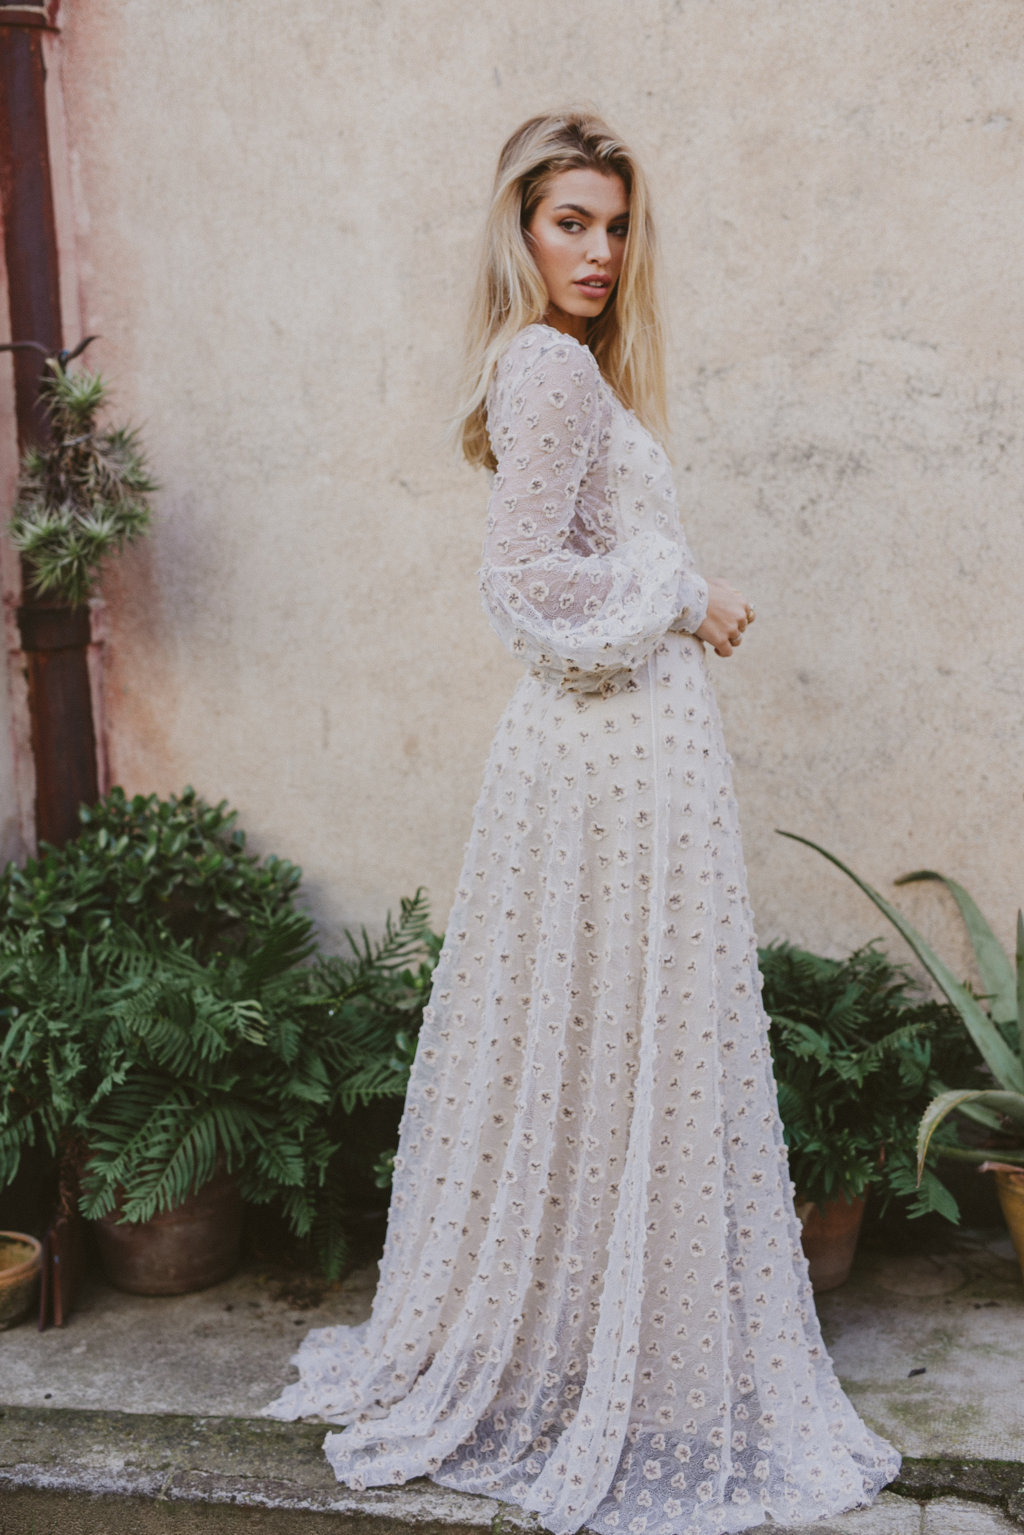 immacle tanger novias 2017 IMMACLE TANGER-036